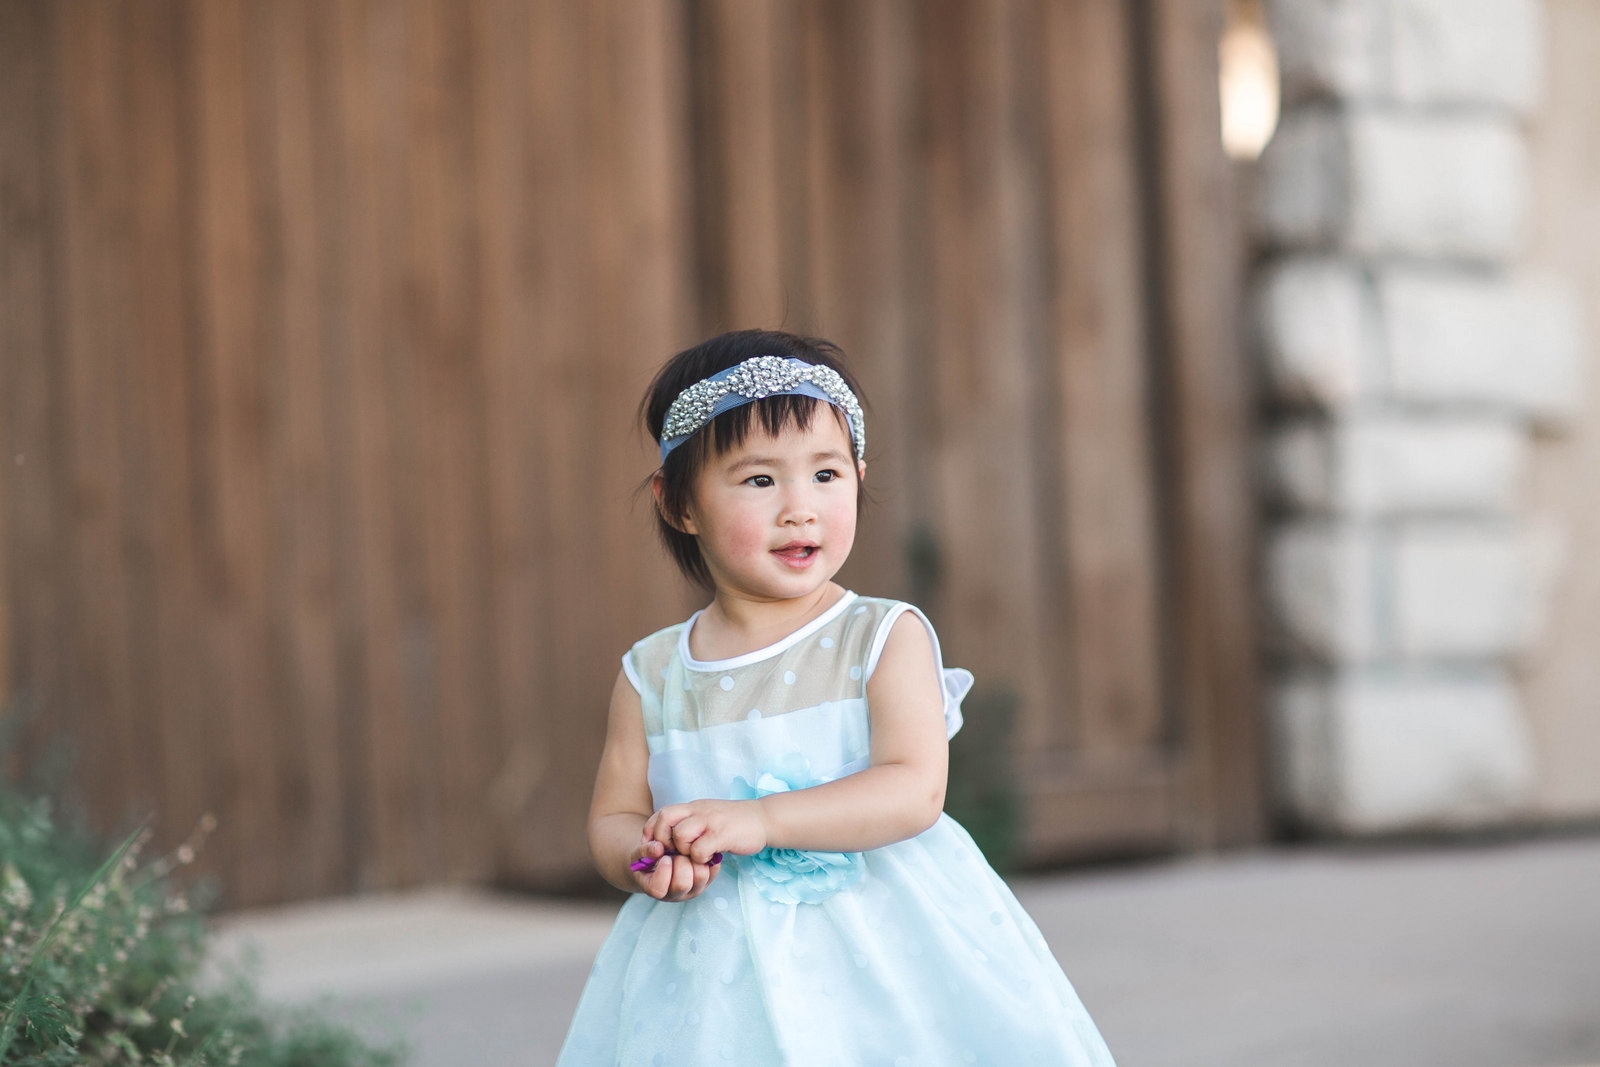 Summer Wedding Dresses for Toddlers